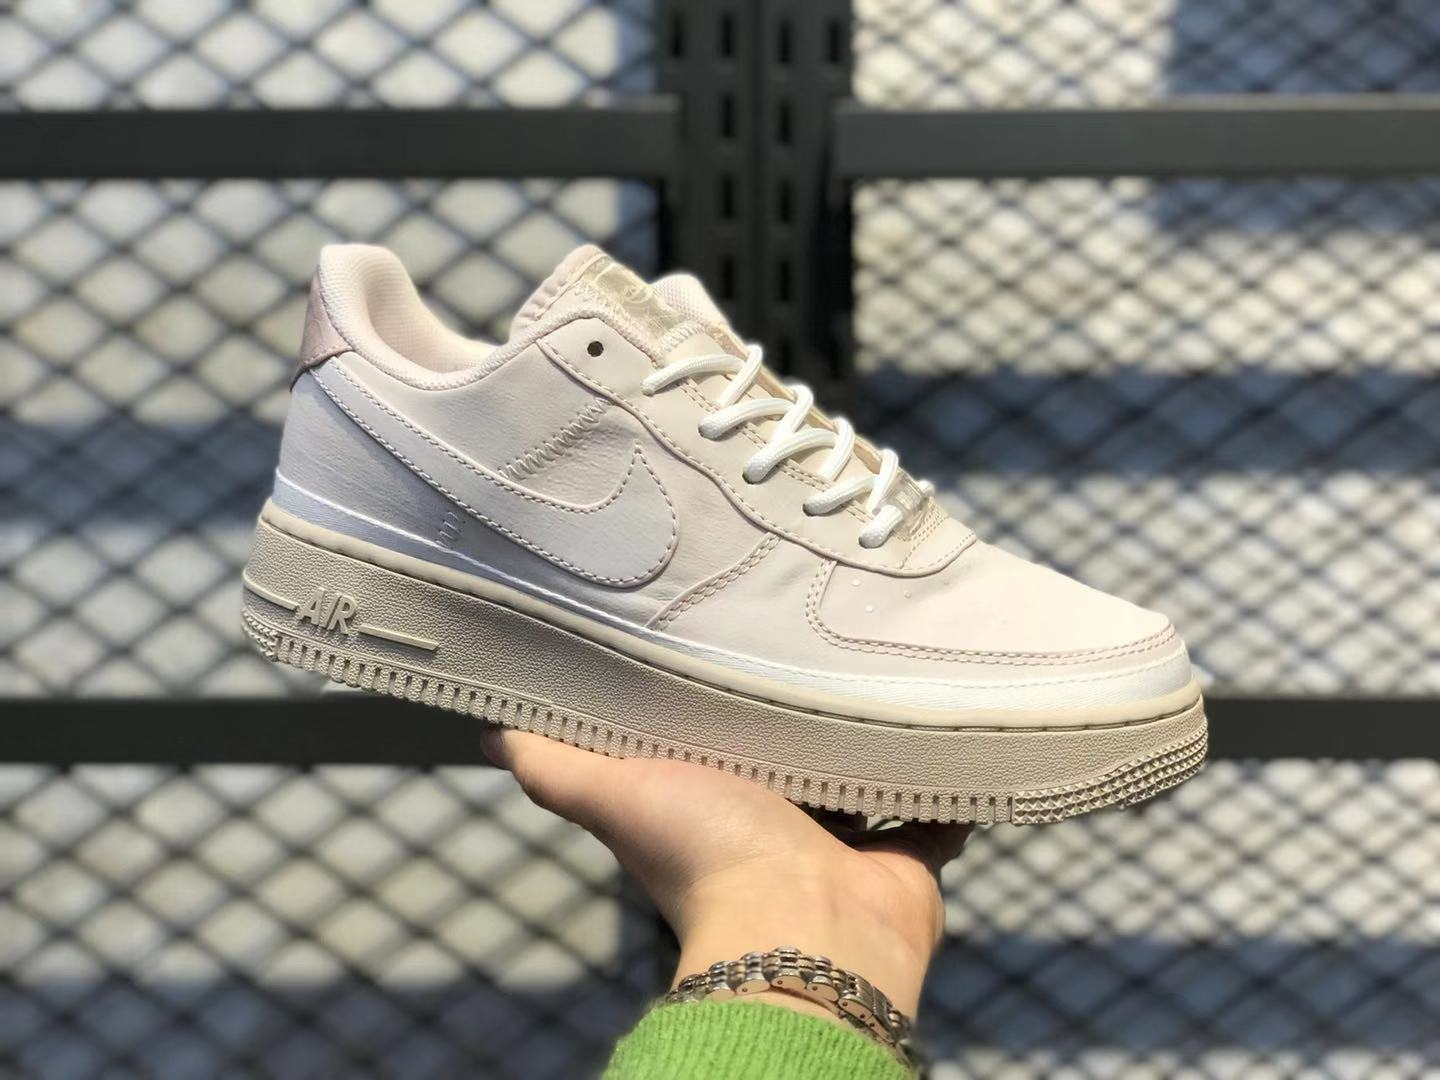 Nike WMNS Air Force 1'07 SE Light Soft Pink Casual Sneakers For Buy AA0287-604